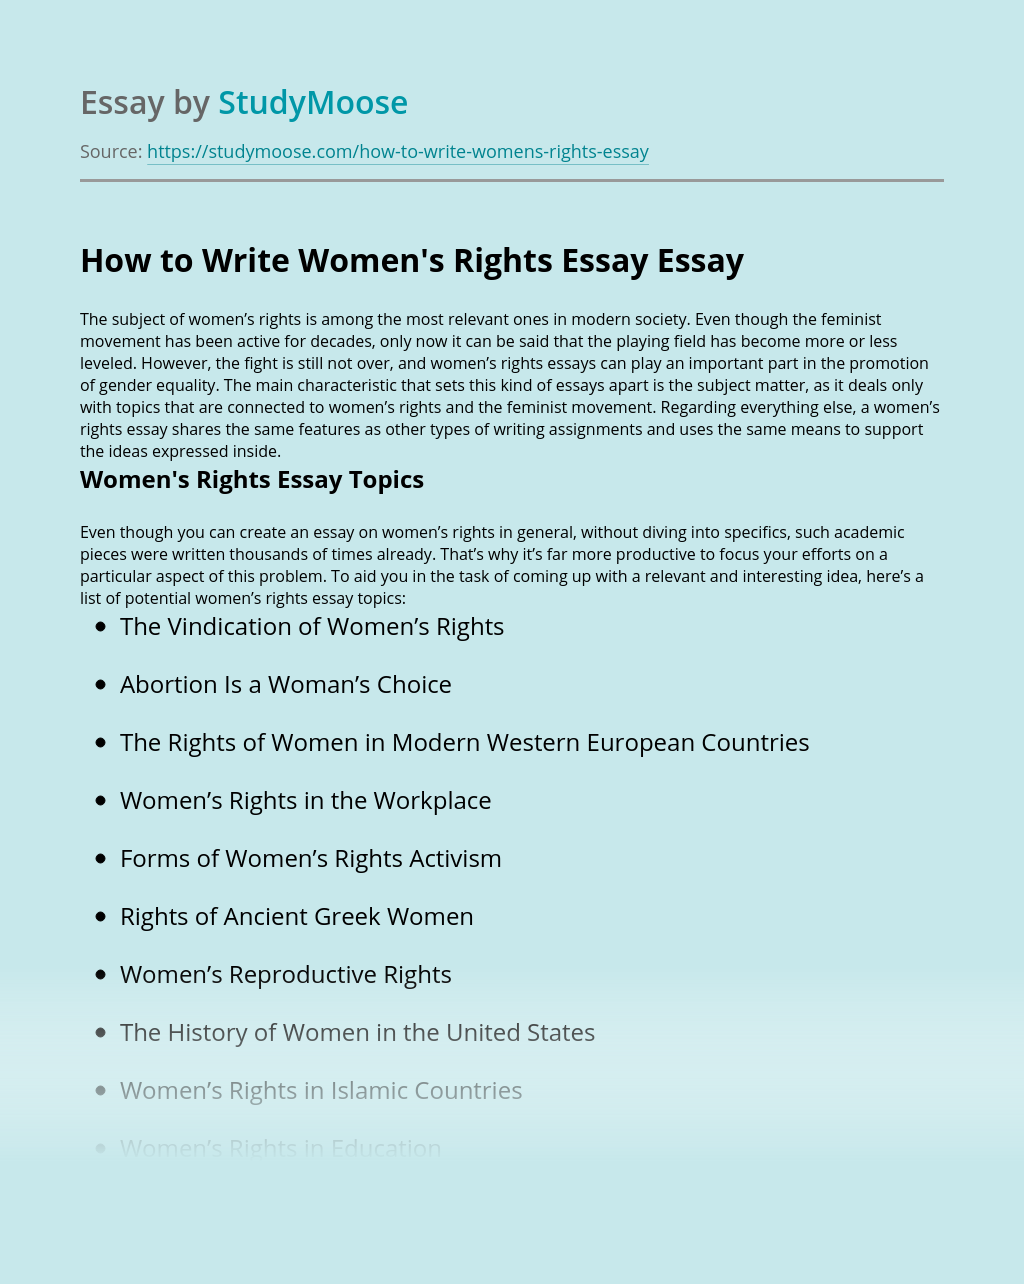 How to Write Women's Rights Essay